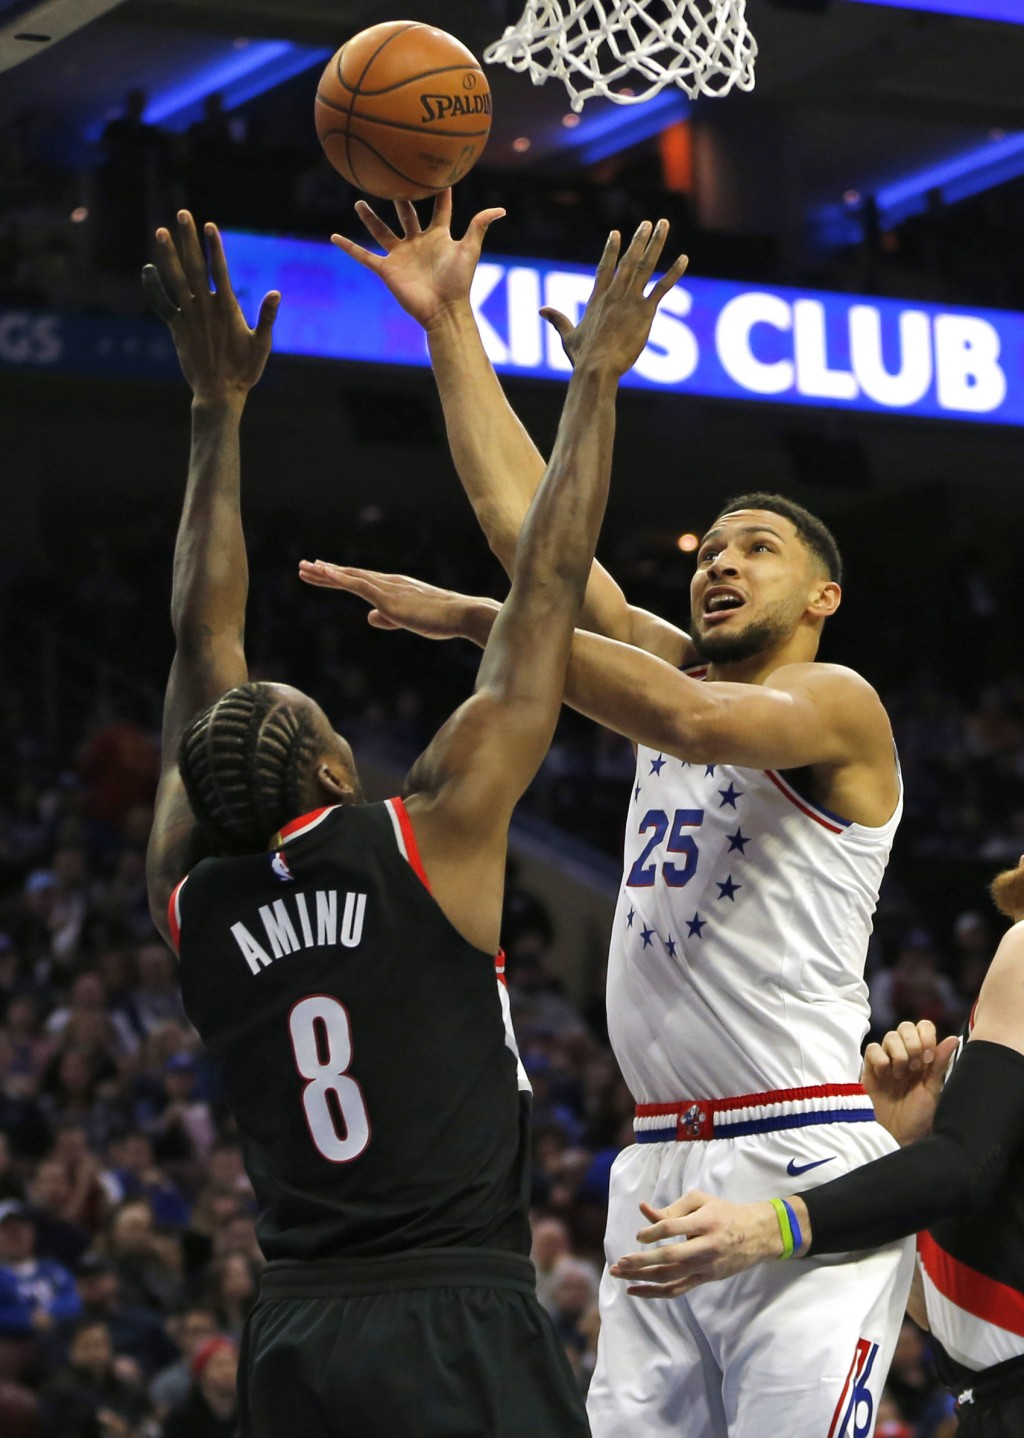 Philadelphia 76ers guard Ben Simmons (25) takes a shot over Portland Trail Blazers forward Al-Farouq Aminu (8) during the first half on an NBA basketb